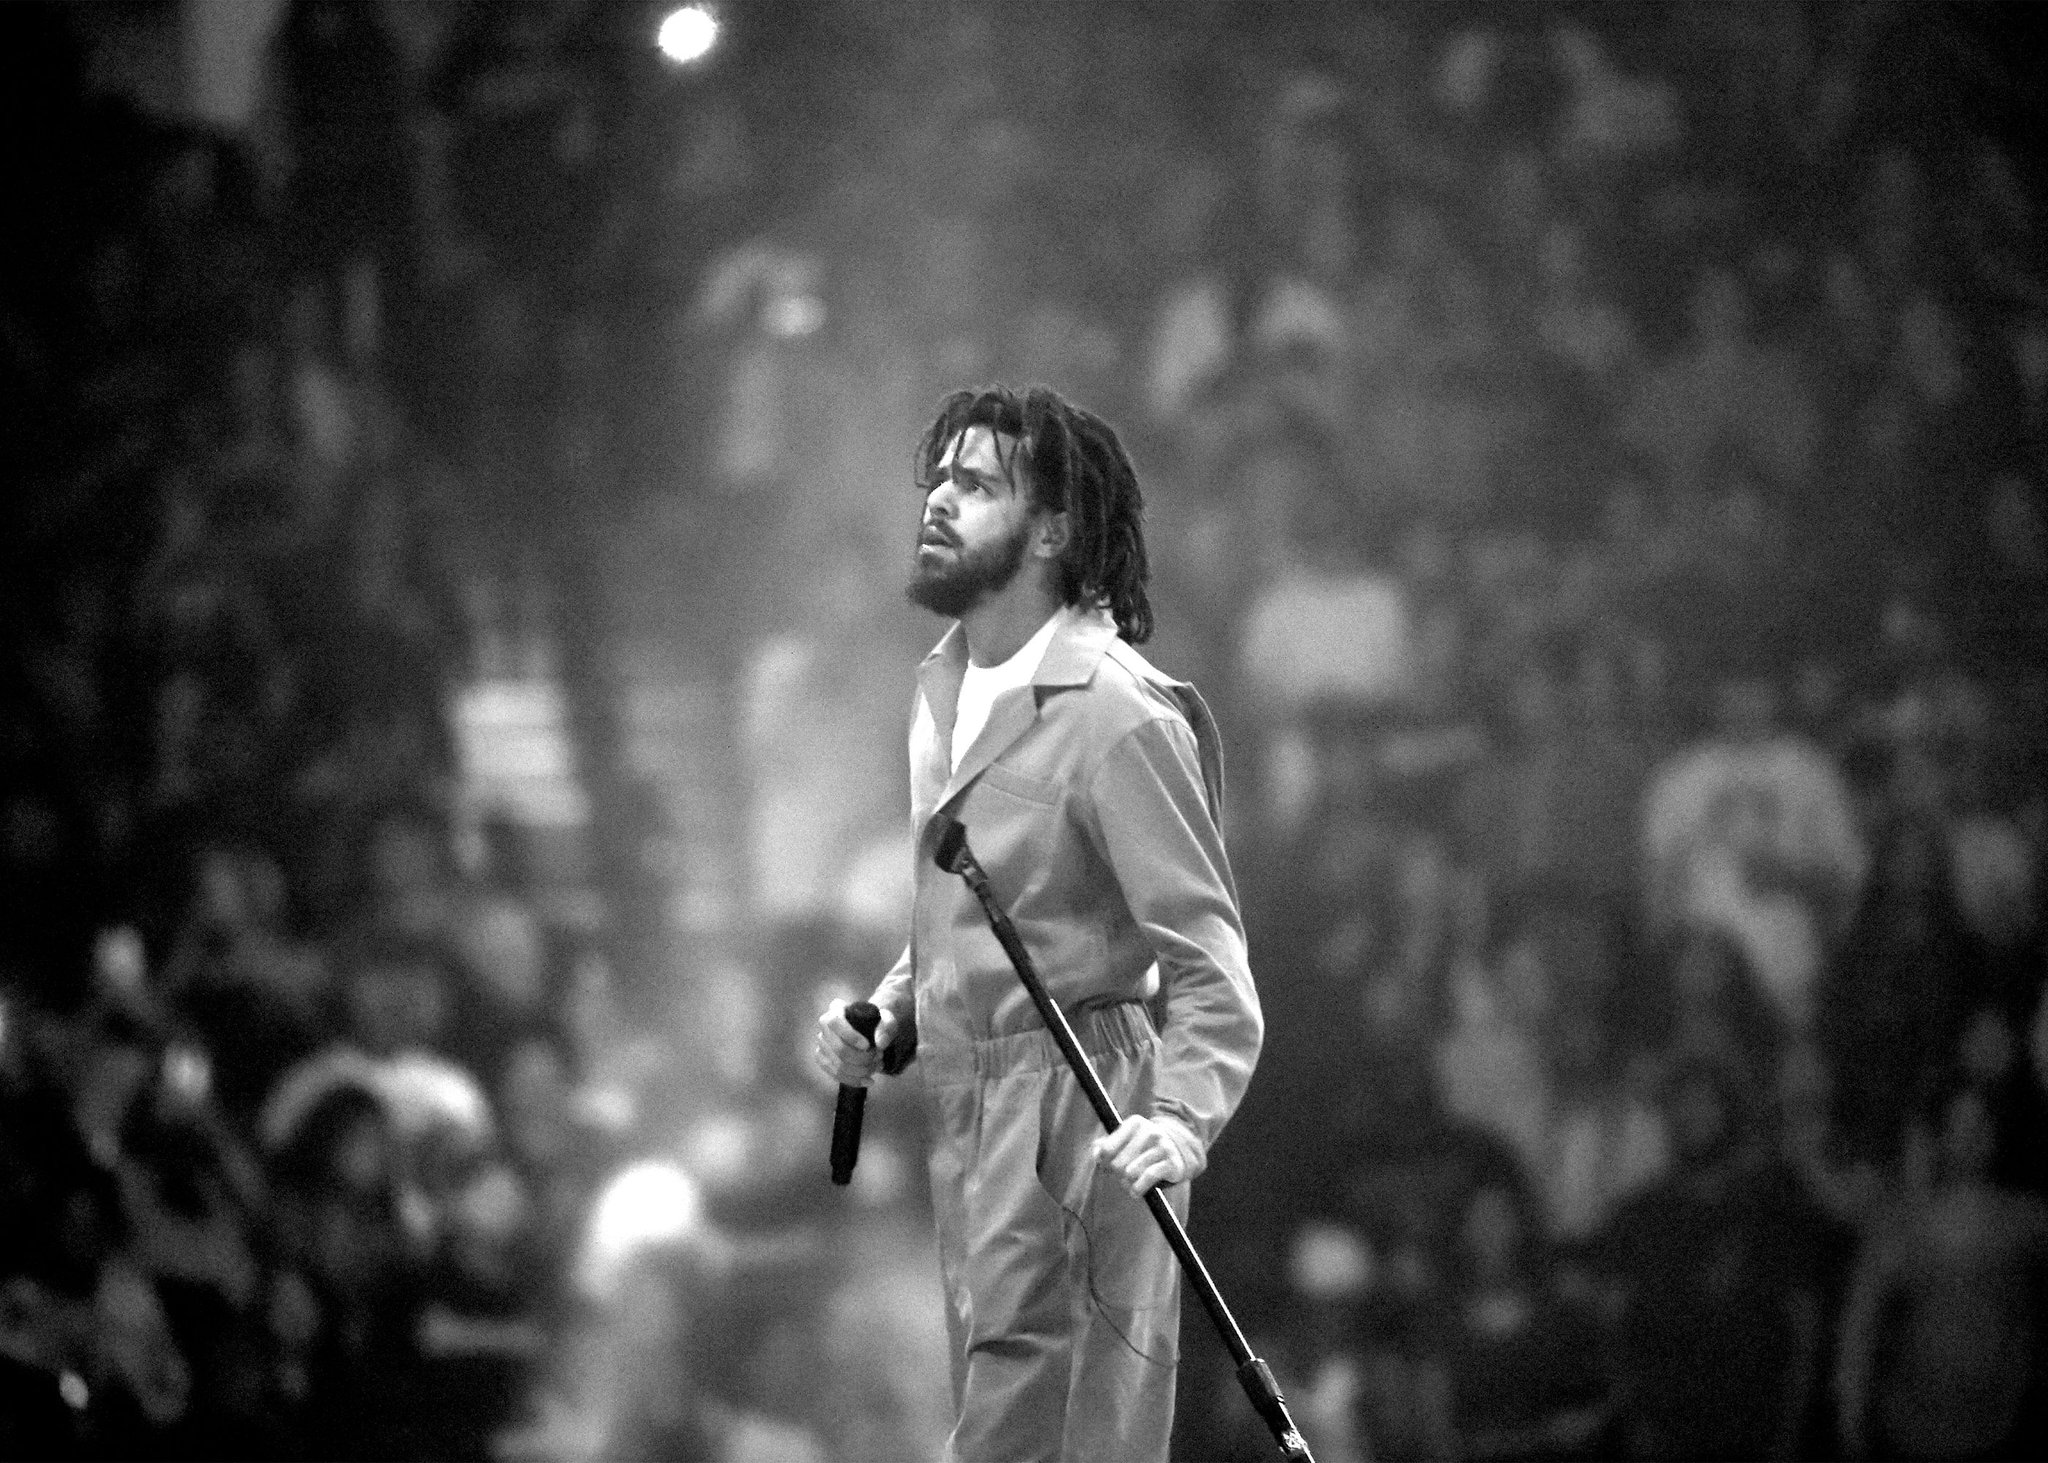 J. Cole breaks Apple Music's first-day streaming record in the US https://t.co/bAOVCc2Wbi https://t.co/5M6Nniqh1p